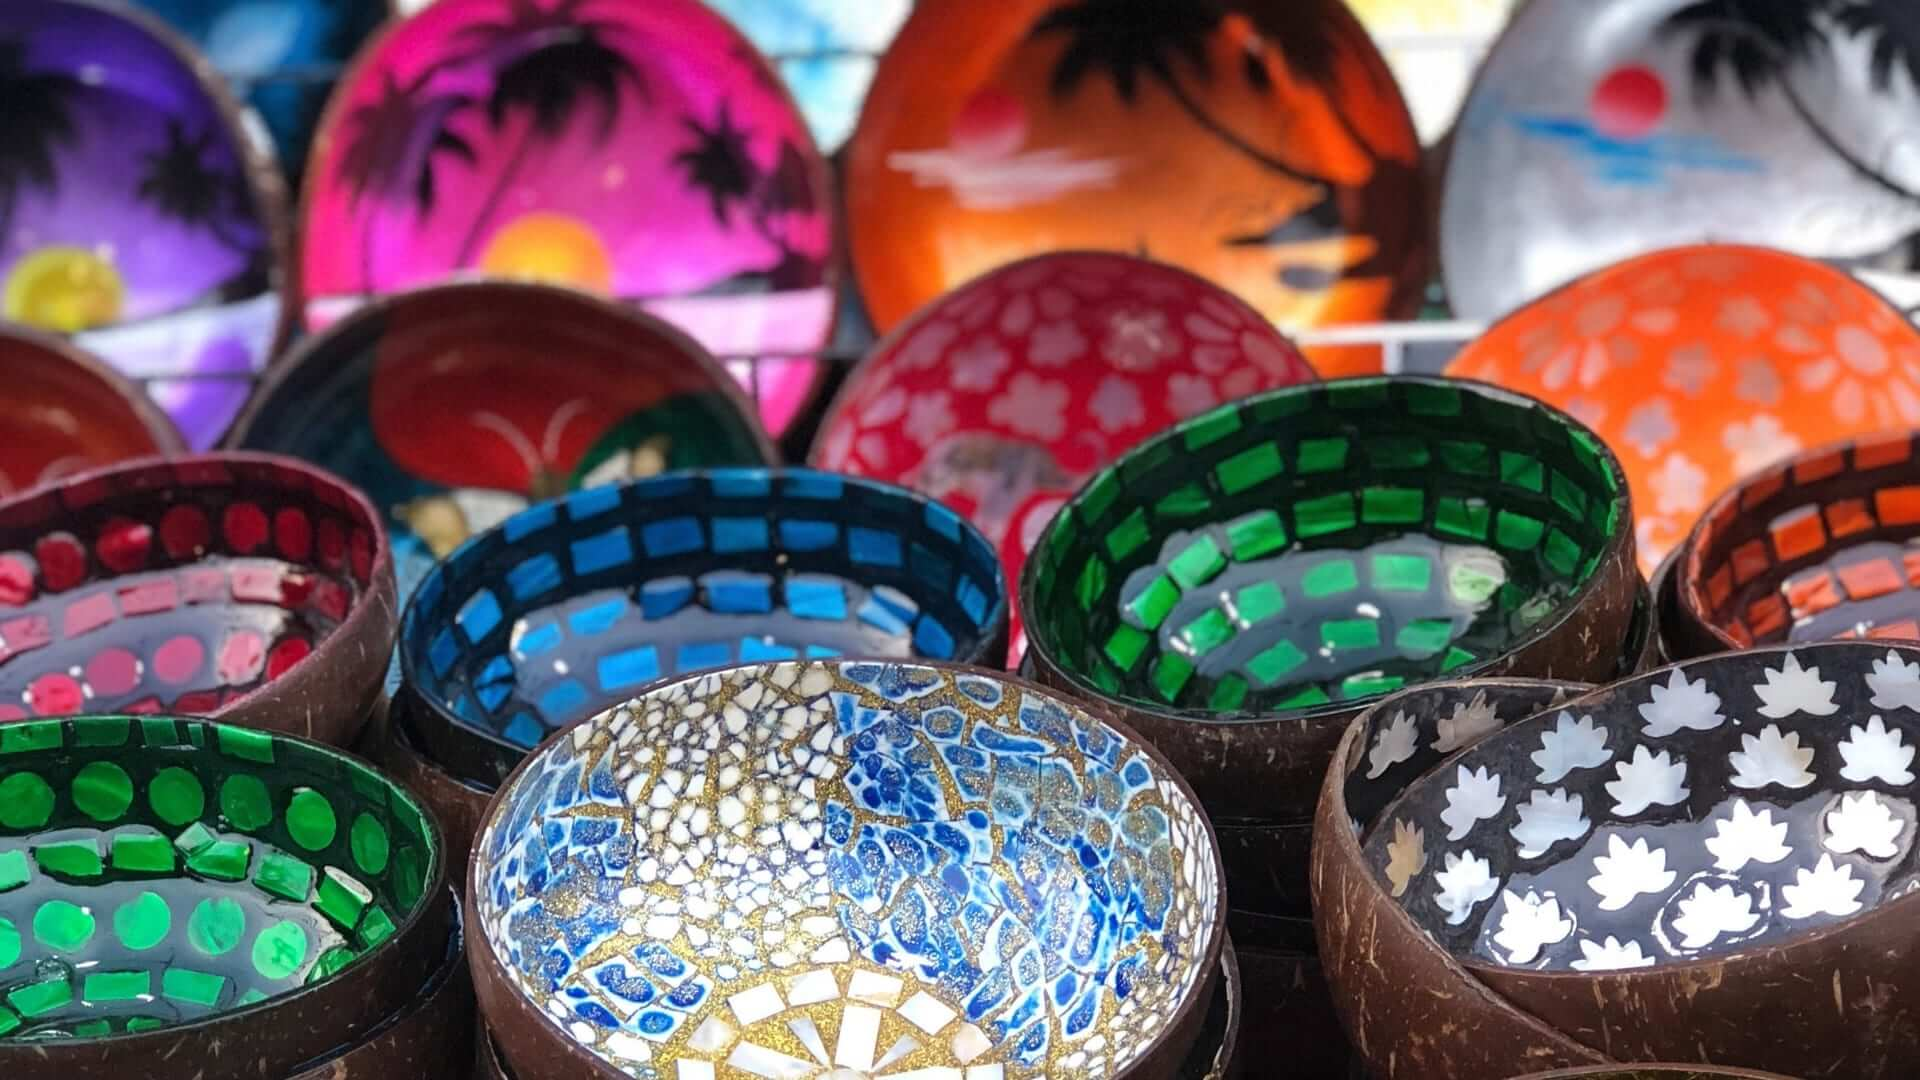 Handmade small bowls in differend colors and with different patterns in Thailand.